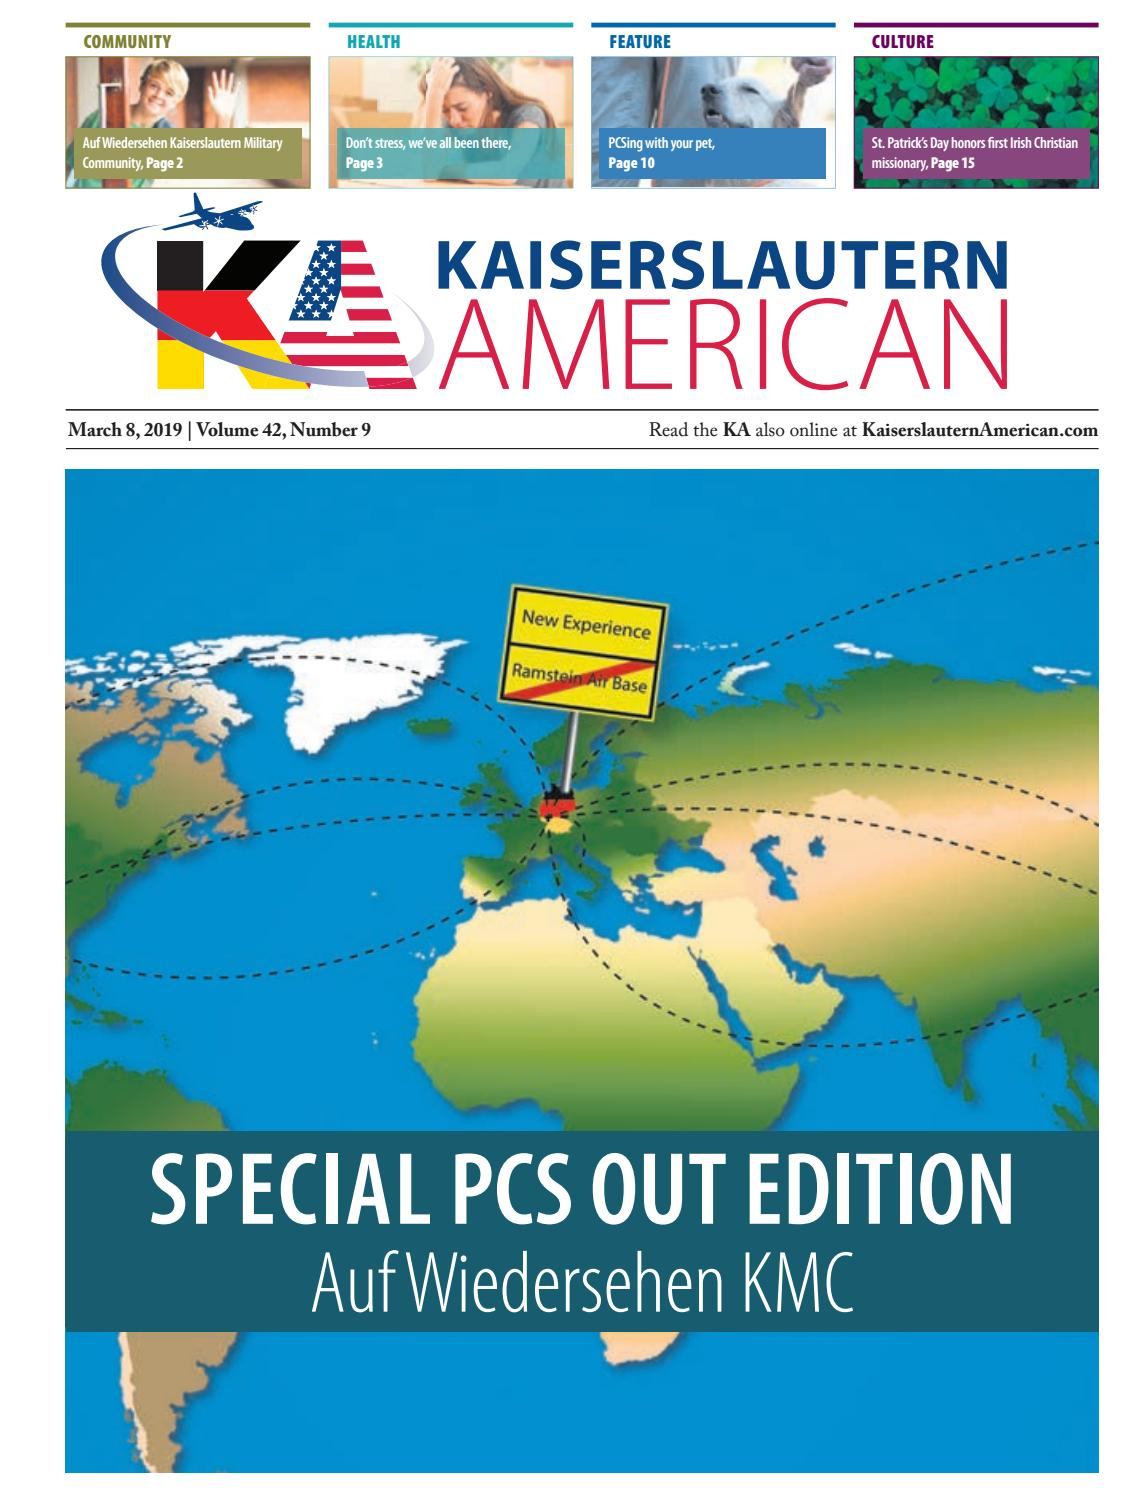 Kaiserslautern American, March 8, 2019 by AdvantiPro GmbH